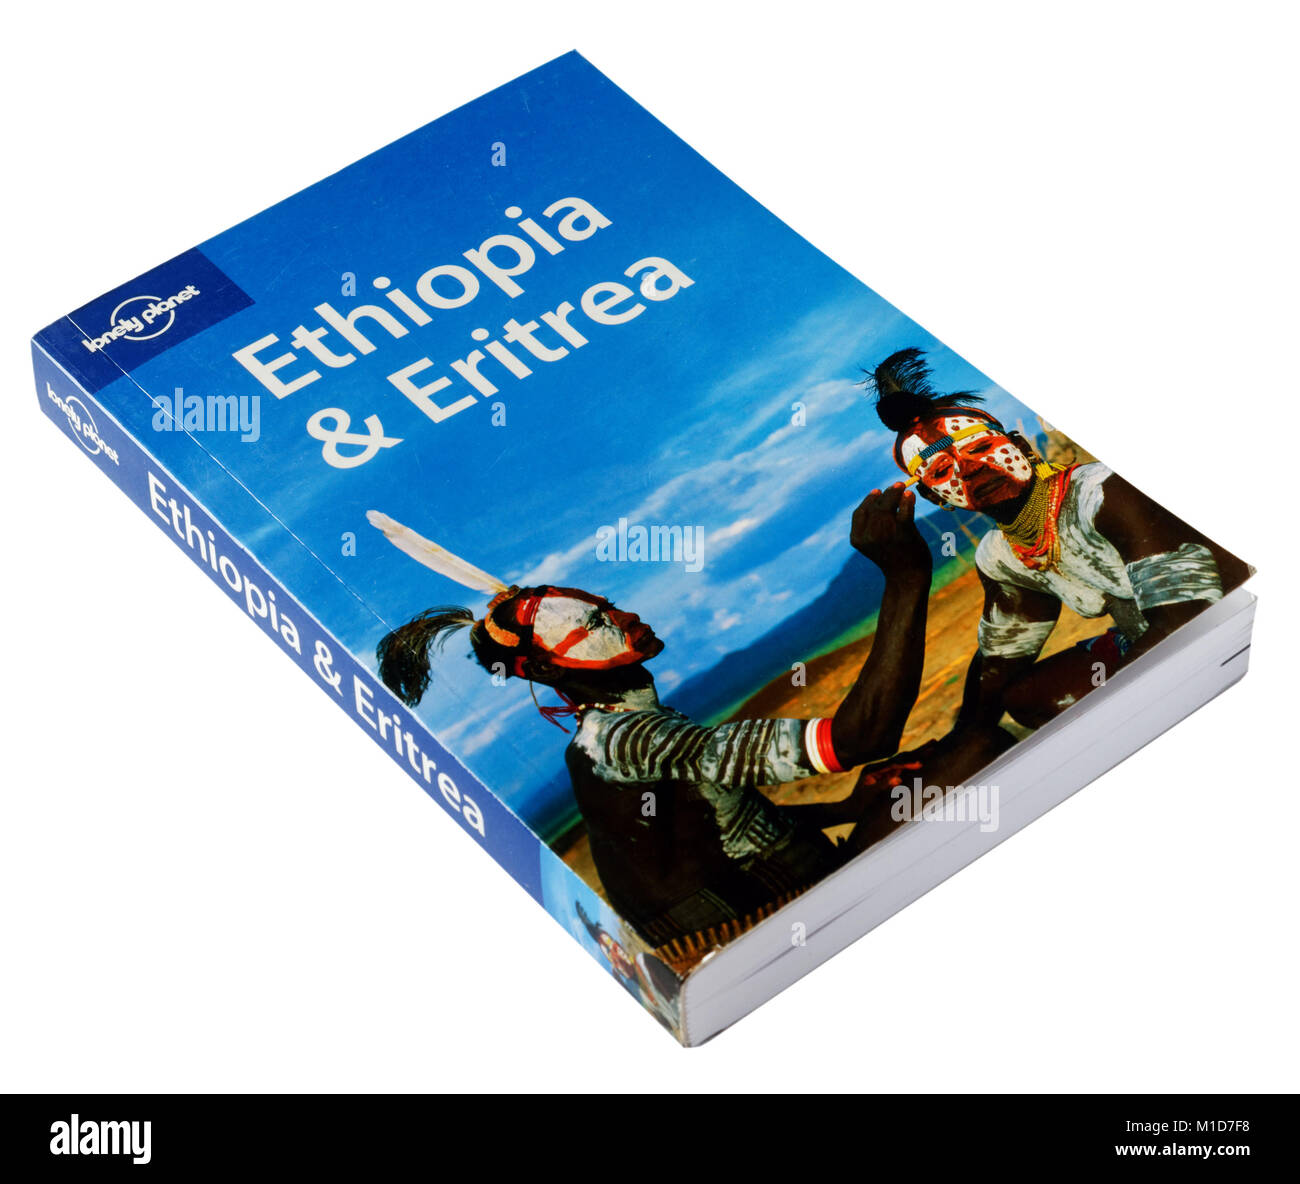 The Lonely Planet guide to Ethiopia and Eritrea - Stock Image